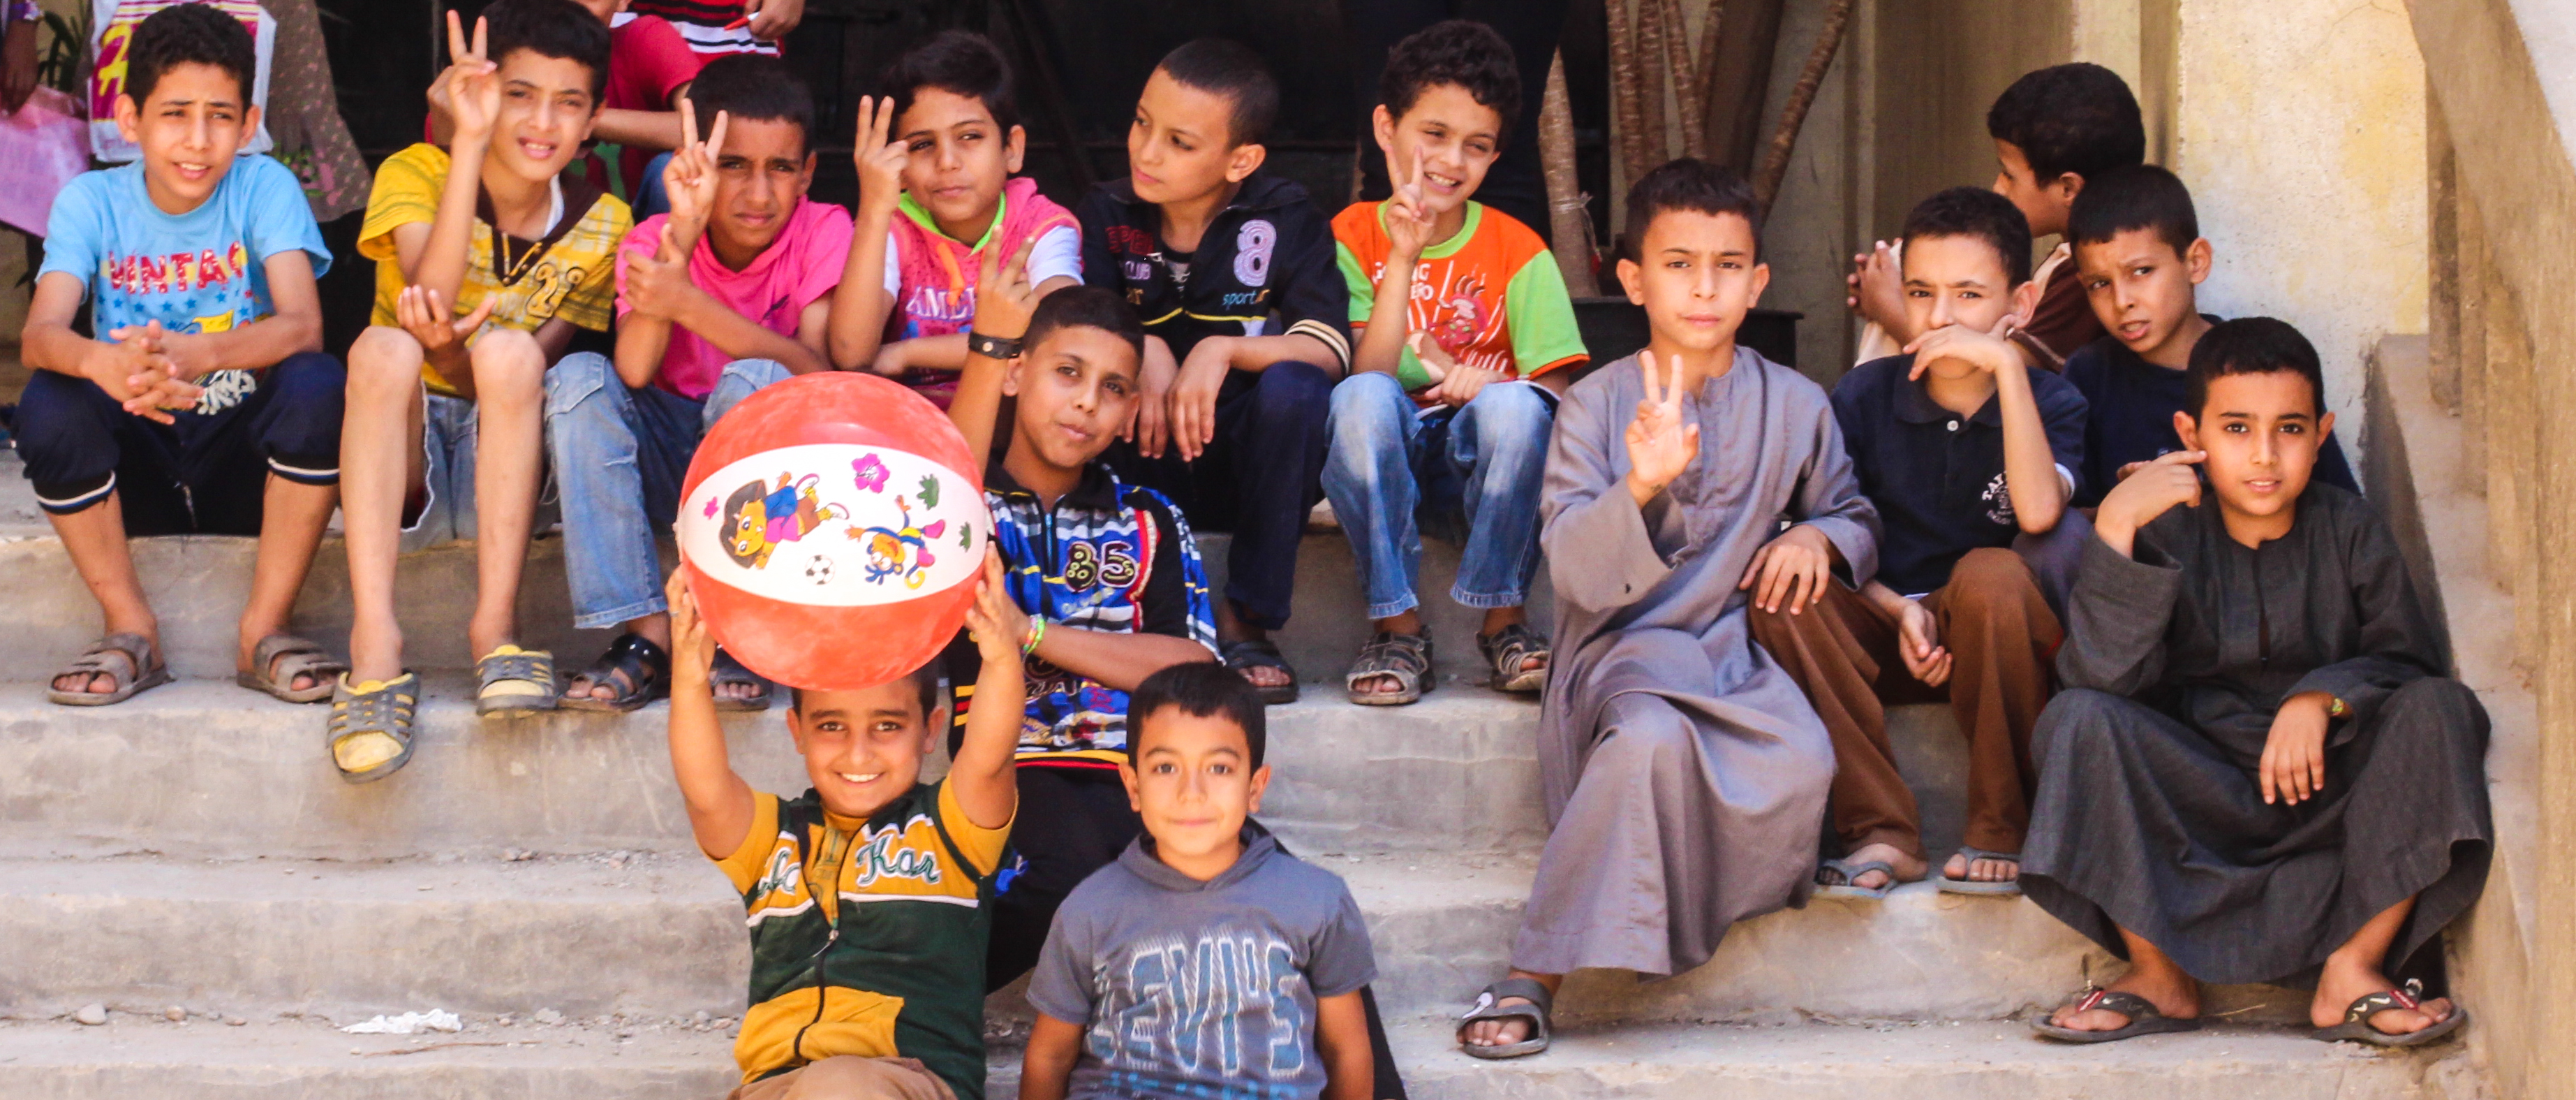 SIMPLY BY SHOPPING AT AMAZON, YOU CAN HELP EGYPT'S CHILDREN DURING THE COVID-19 CRISIS